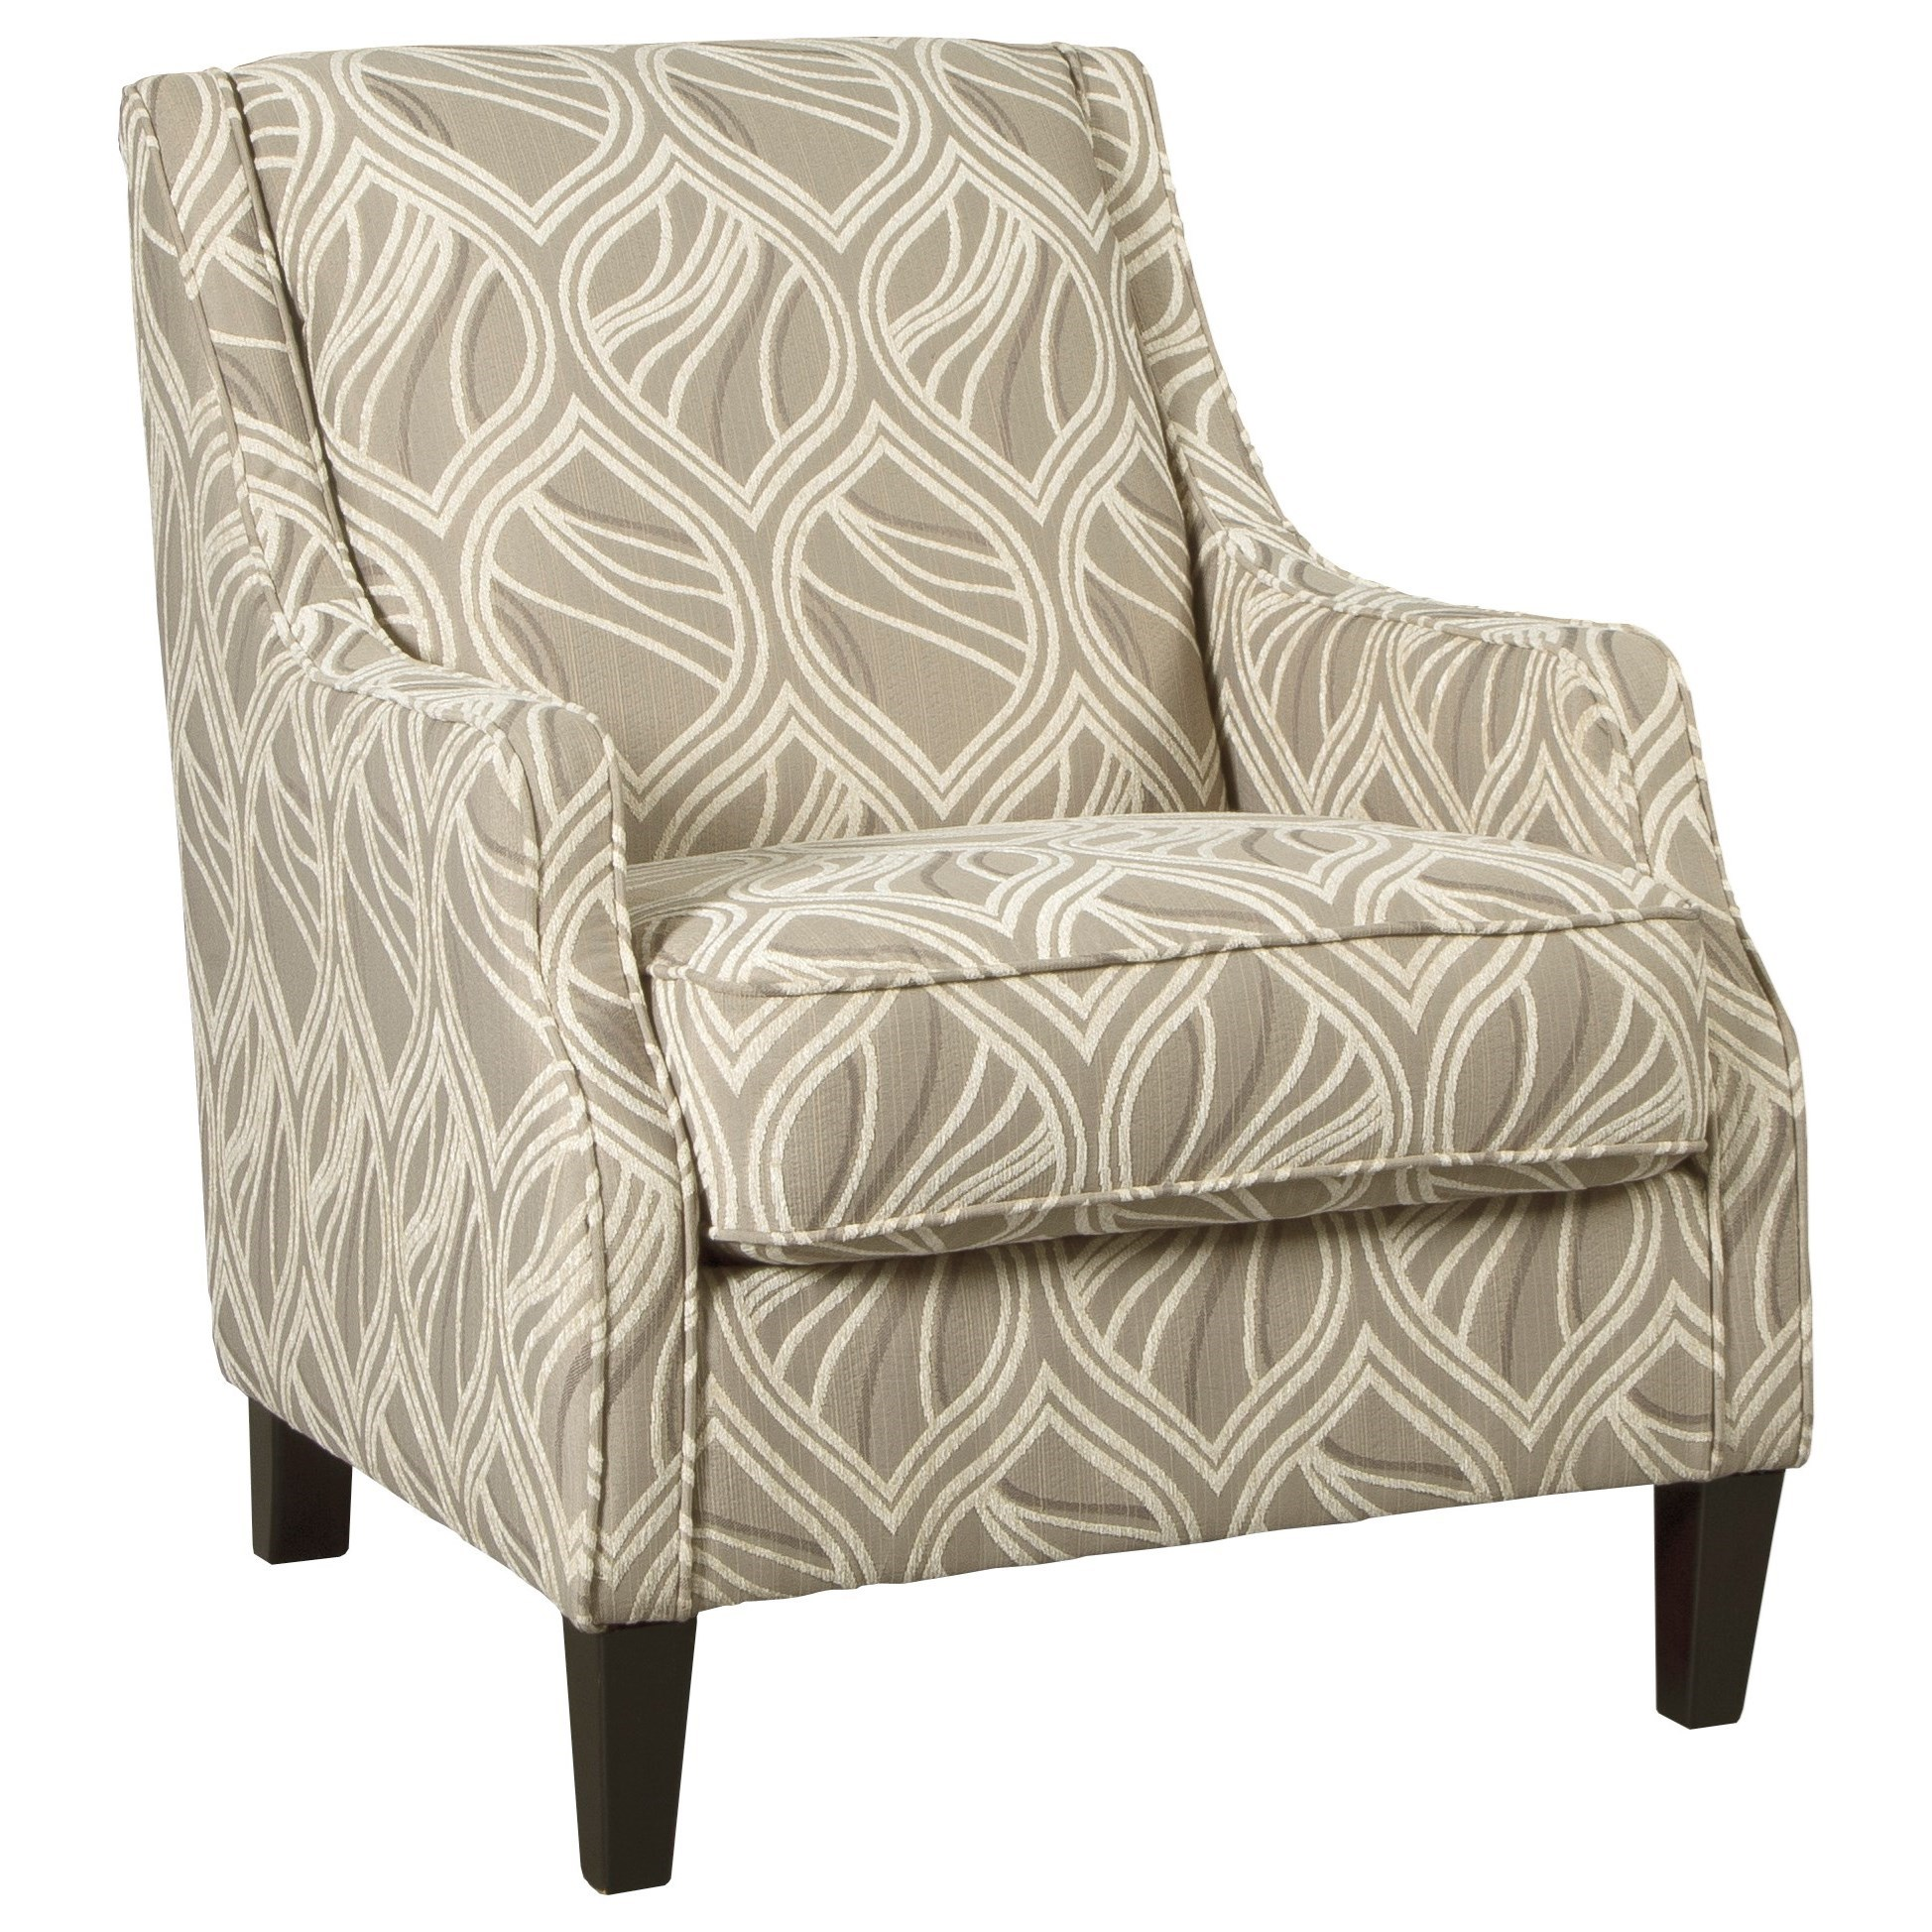 Ashley/Benchcraft Mauricio Accent Chair - Item Number: 8160121